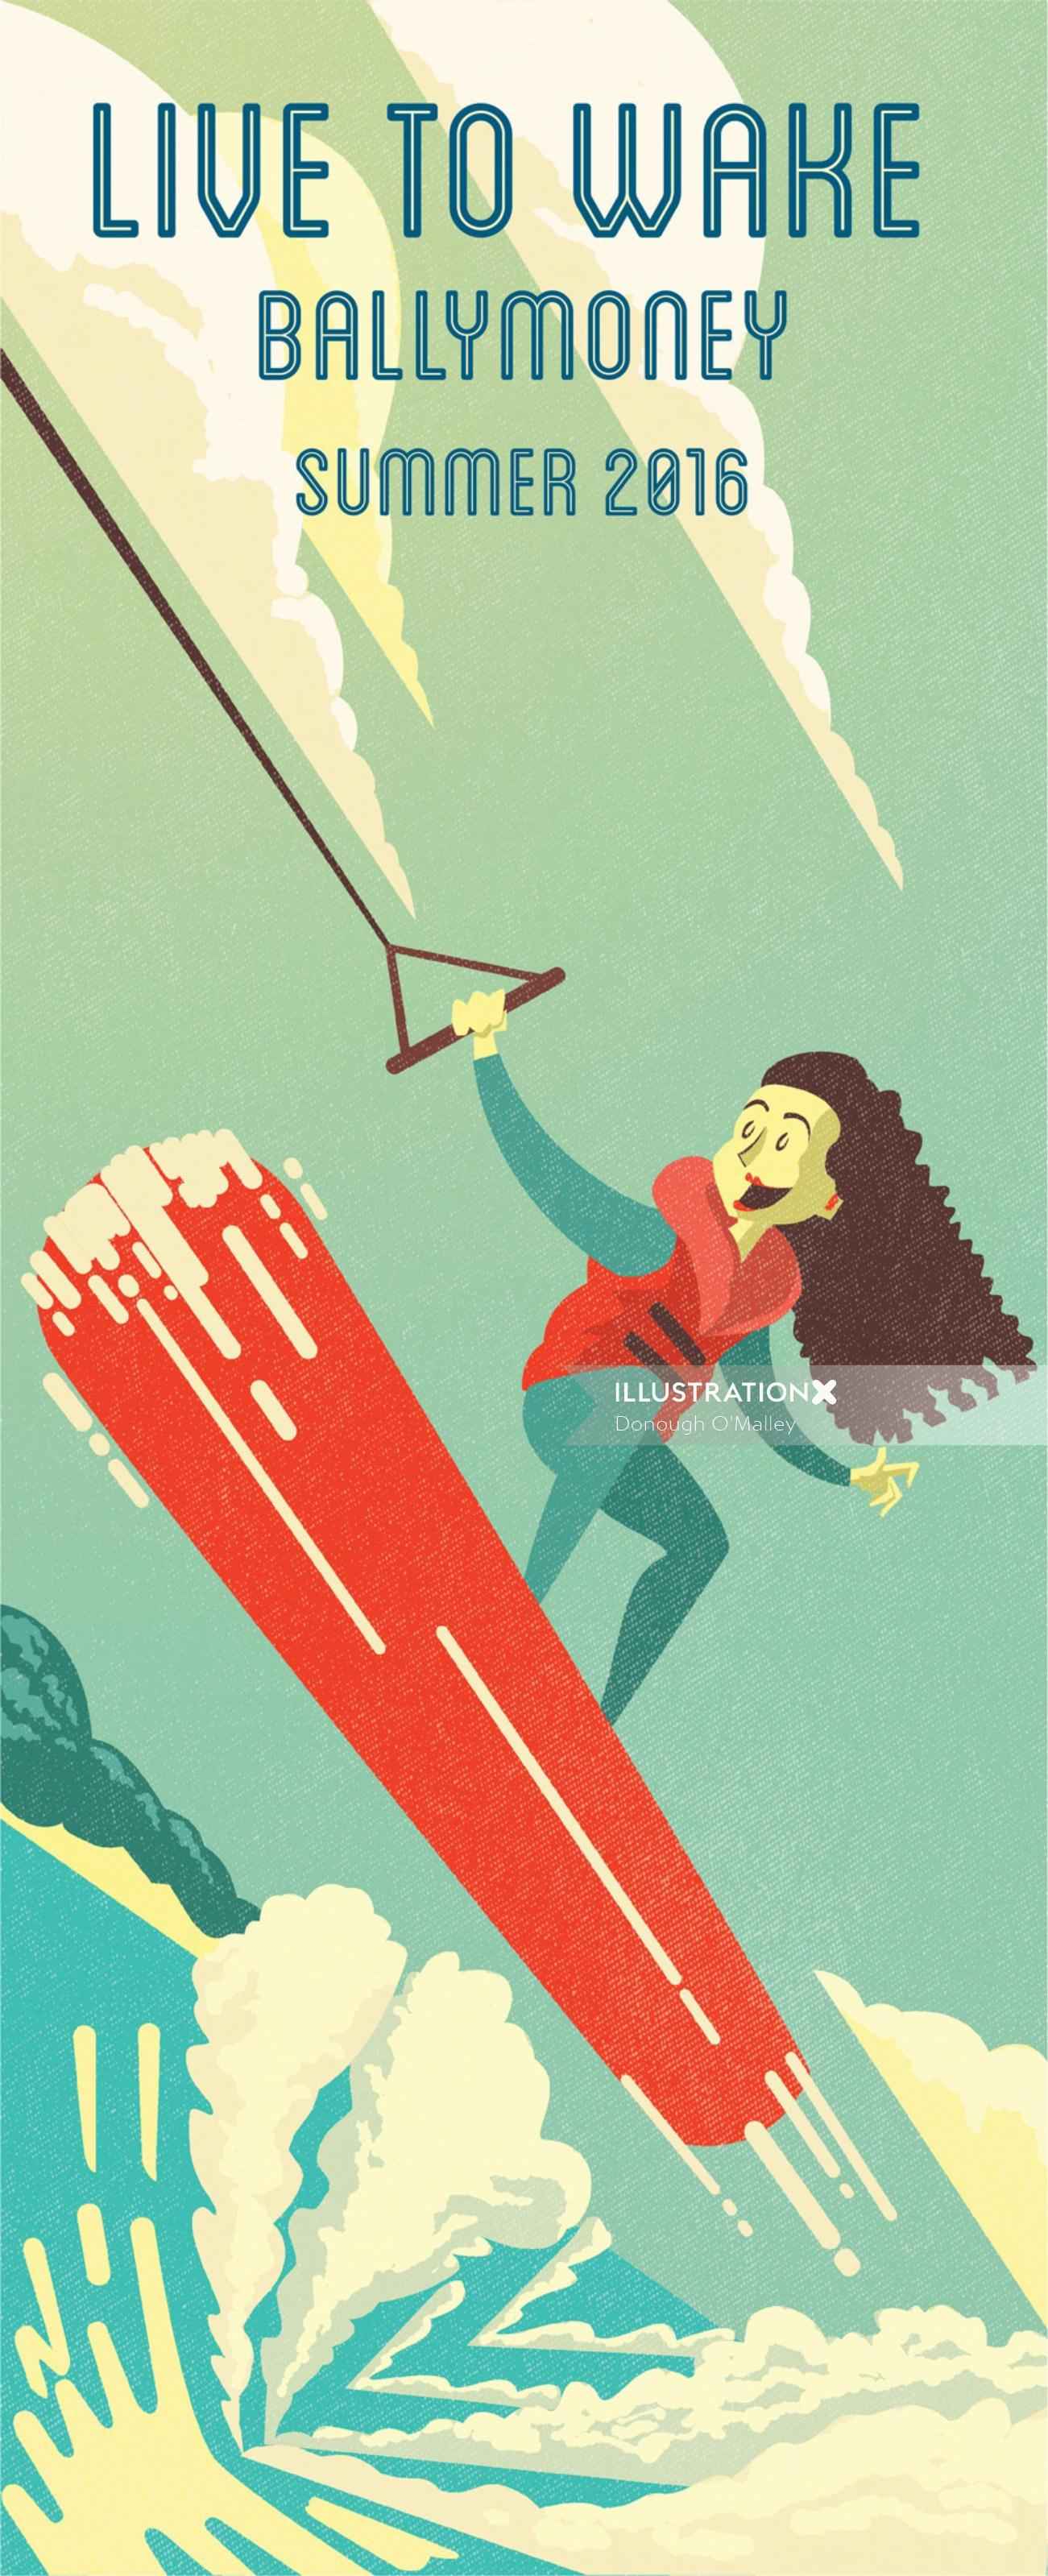 Wakeboarding illustration by Donough O'Malley